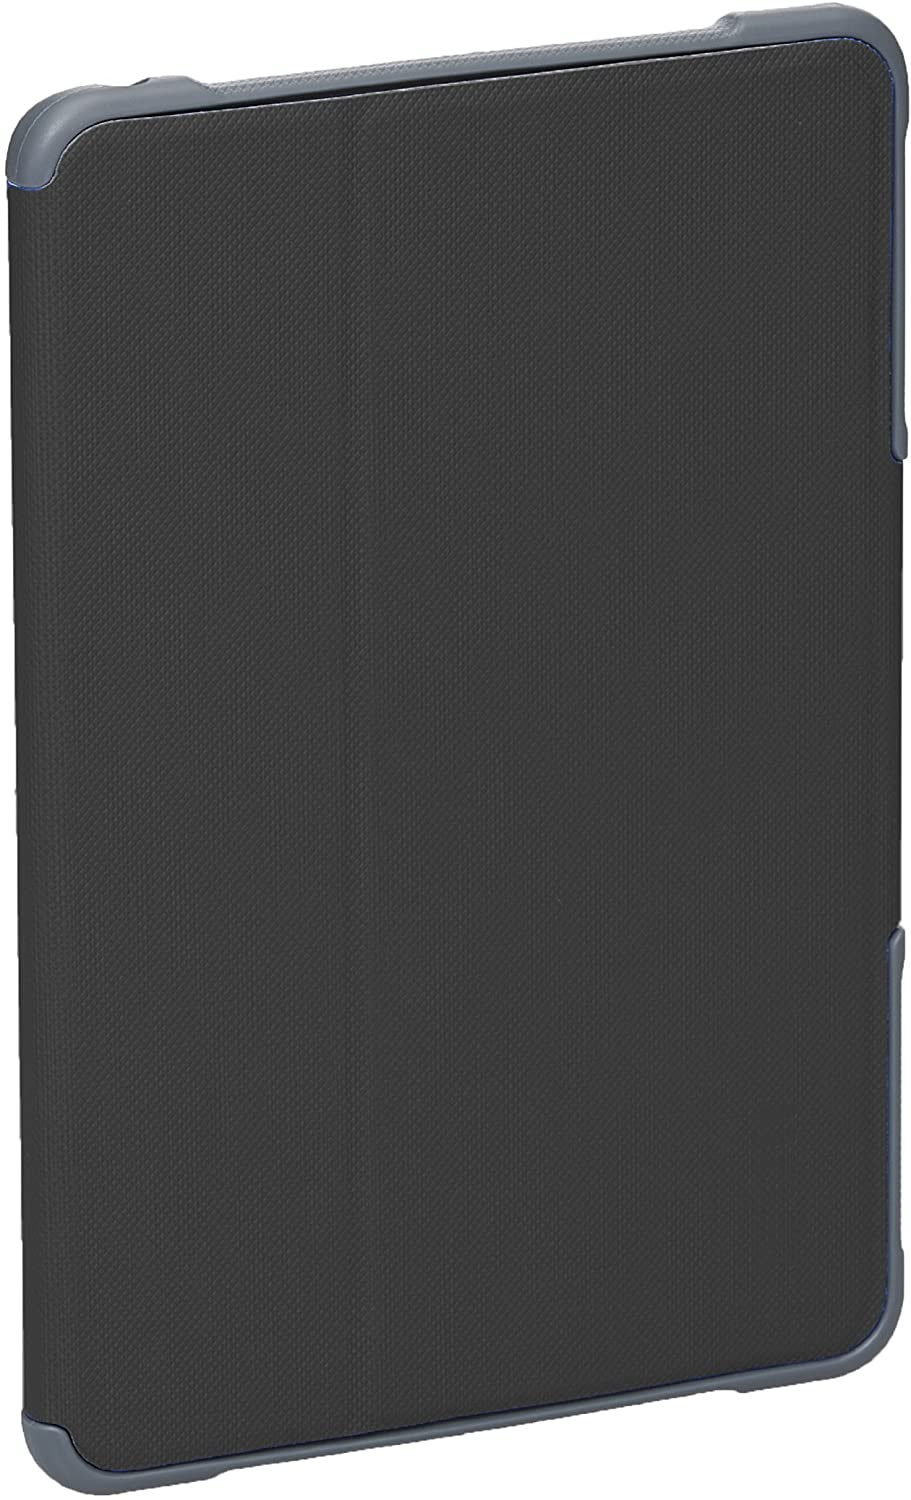 STM Dux, Rugged case for Apple iPad Mini 1, 2, 3 - Black (stm-222-104G-01)